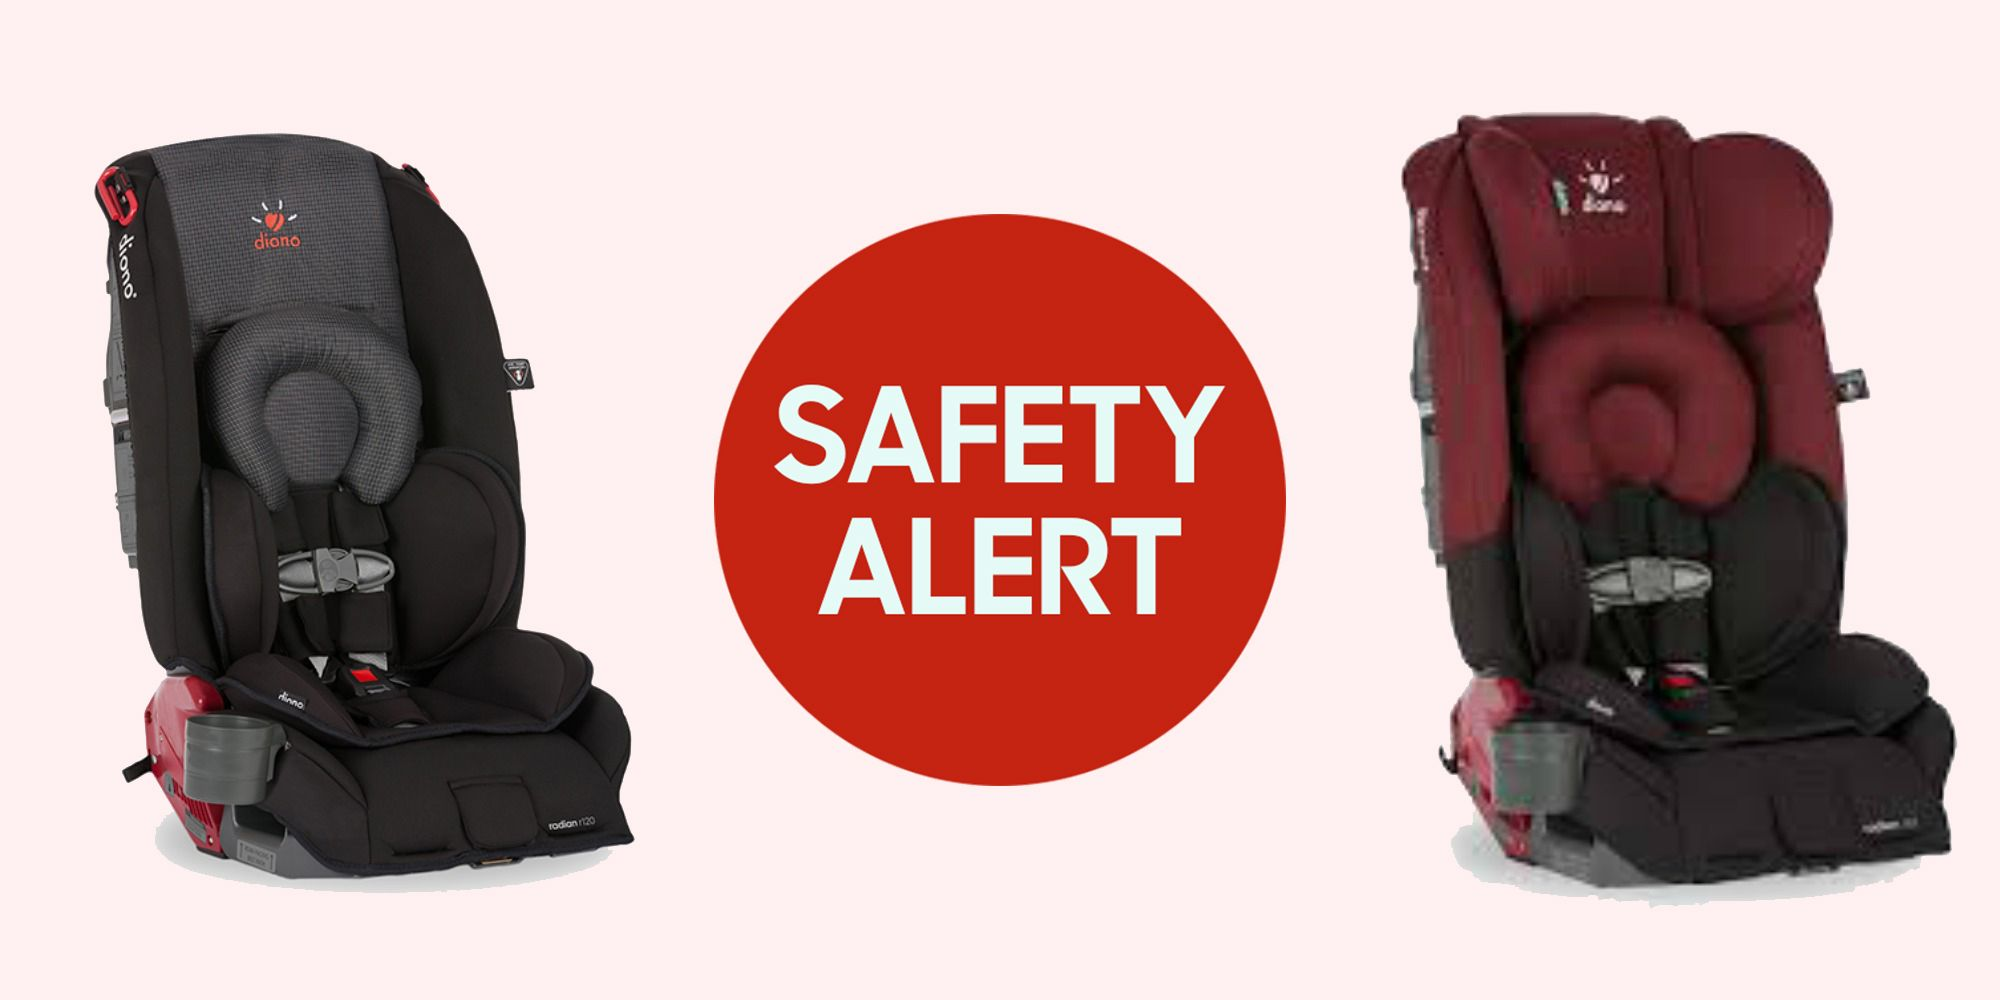 Diono Recalls More Than 500 000 Car Seats Over Concerns About Belt